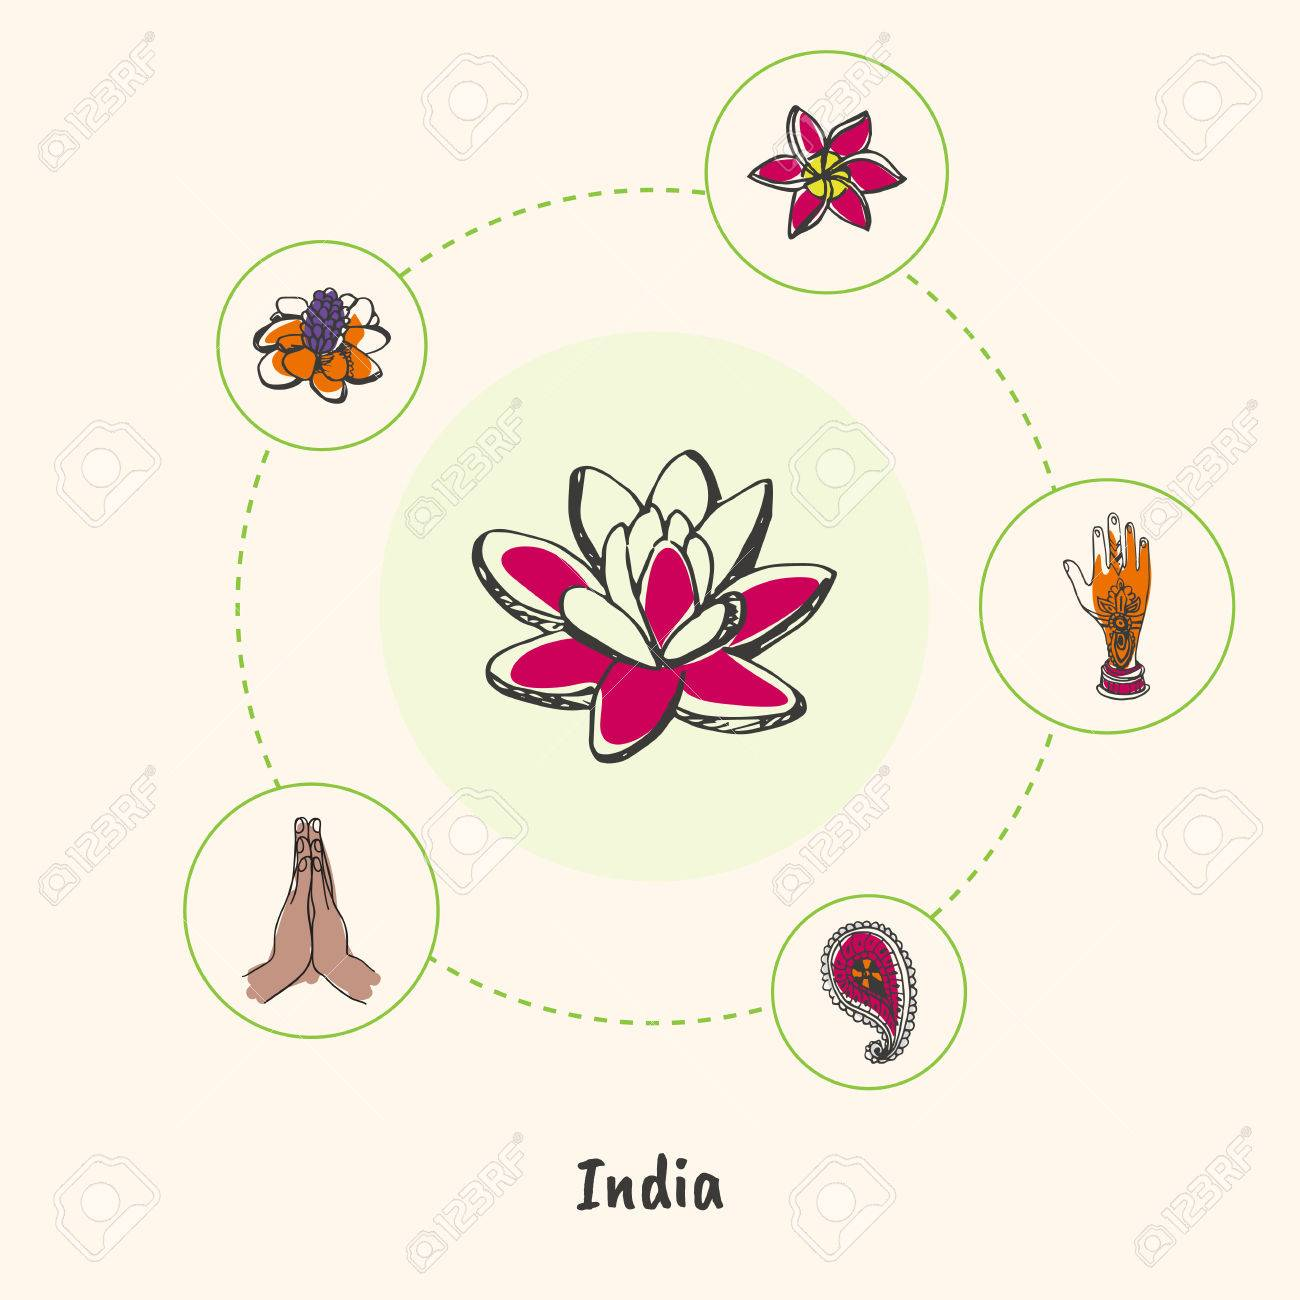 Attractive India Lotus Flower Colorized Doodle Surrounded Folded